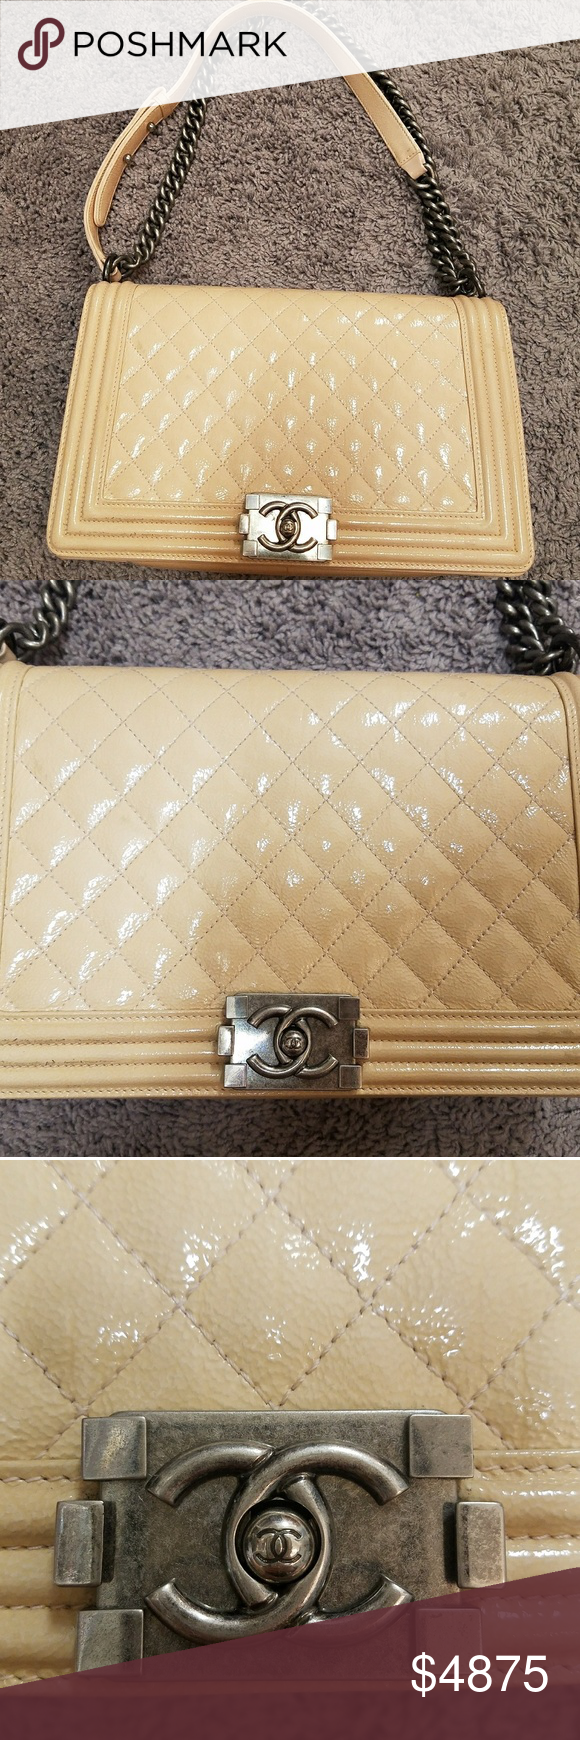 2f3ac5861dfe Chanel Beige Quilted Patent Leather New Med BoyBag This Chanel Light Beige  Quilted Patent Leather Boy bag is the New Medium size of the collection and  ...